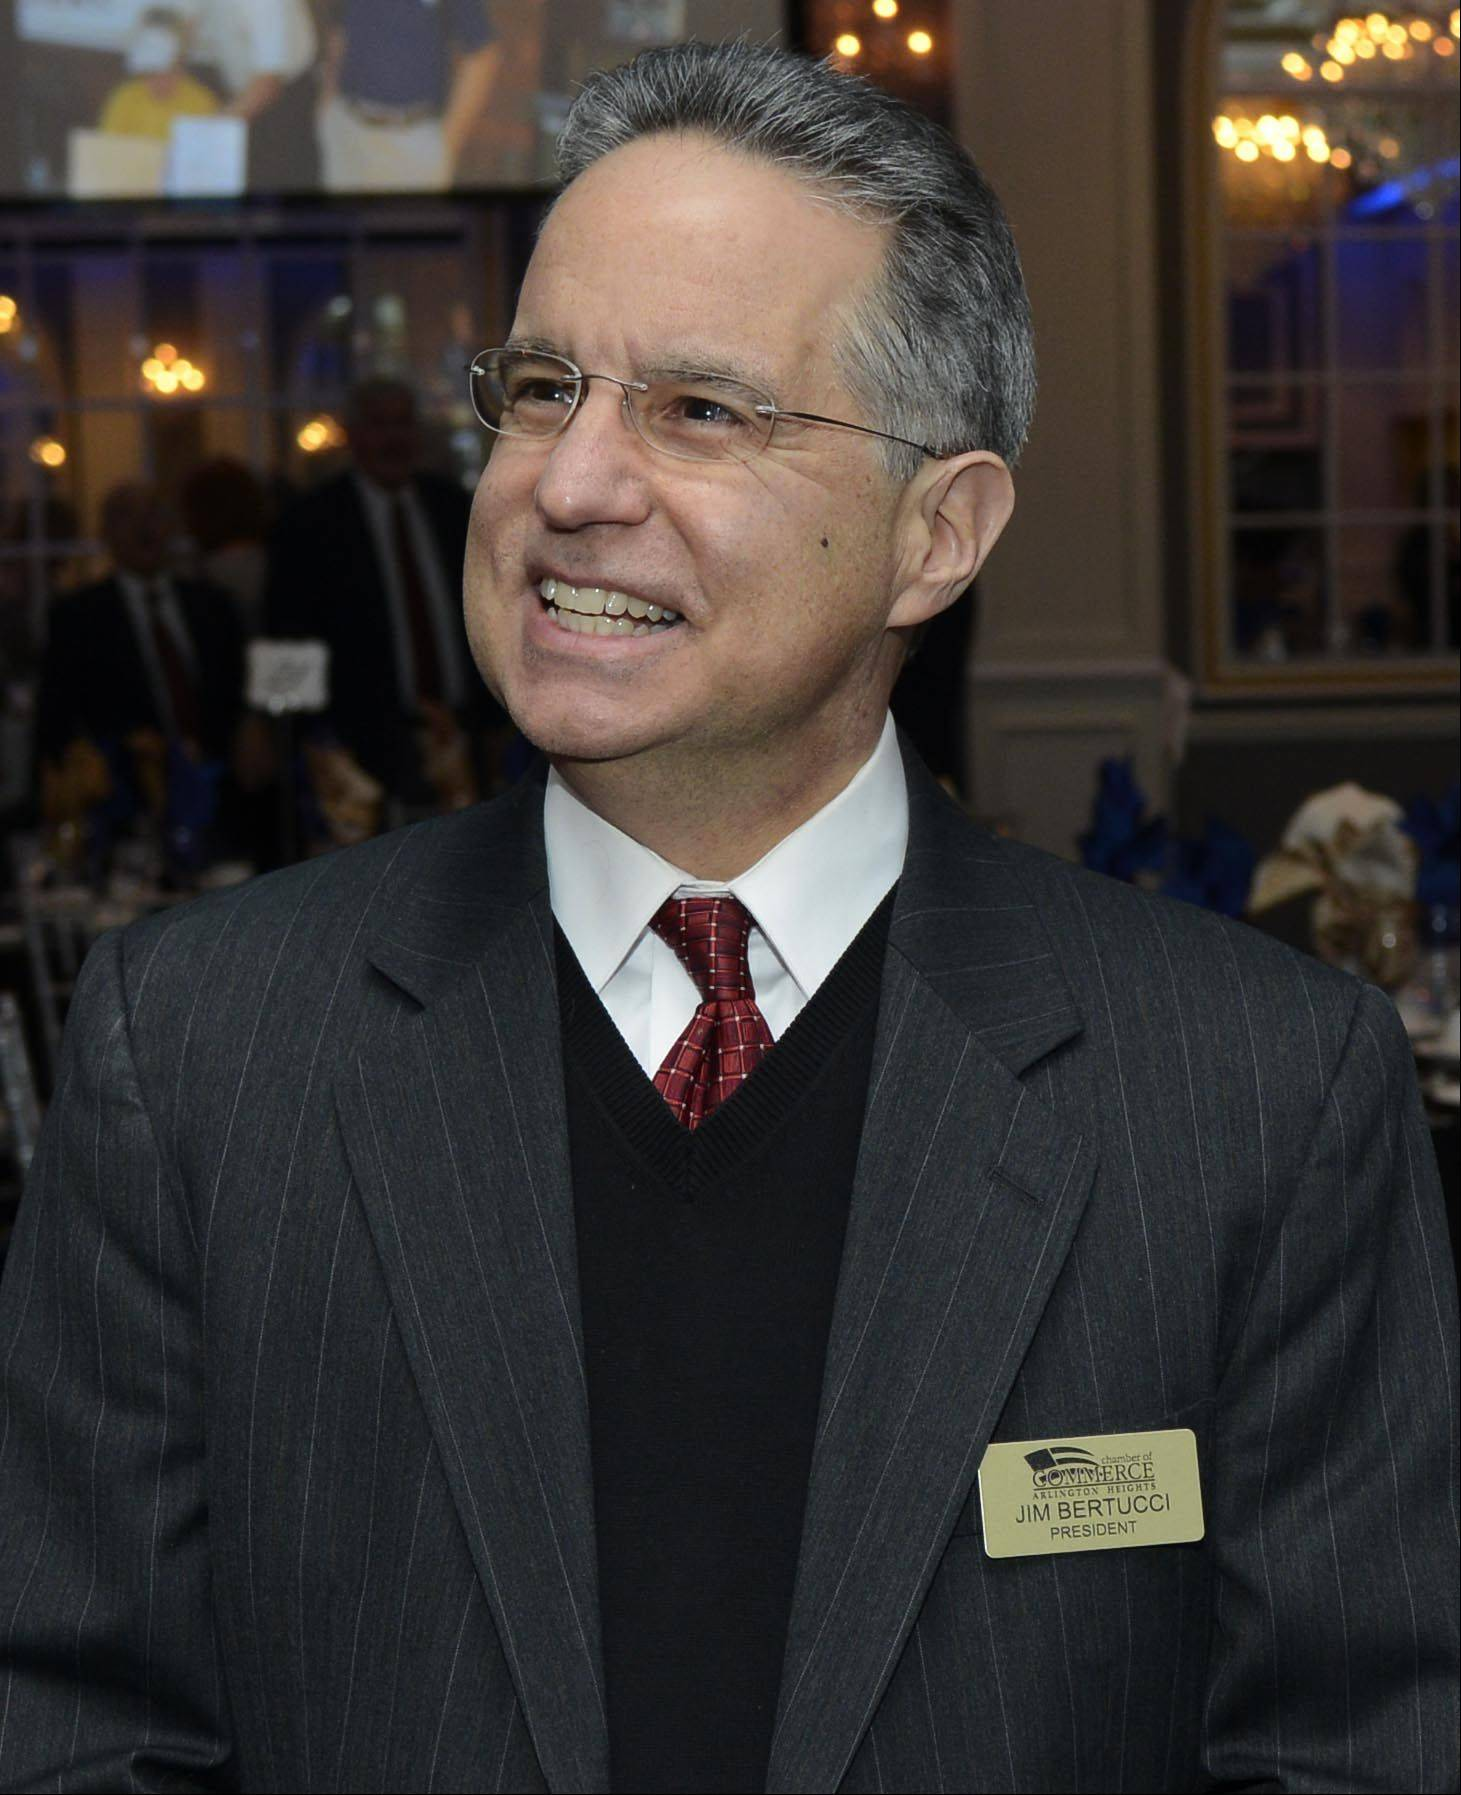 Jim Bertucci, who is the new president of the Arlington Heights Chamber of Commerce, chats with guests prior to the Arlington Heights Chamber of Commerce Installation Dinner/Awards at European Crystal Banquets in Arlington Heights Thursday.